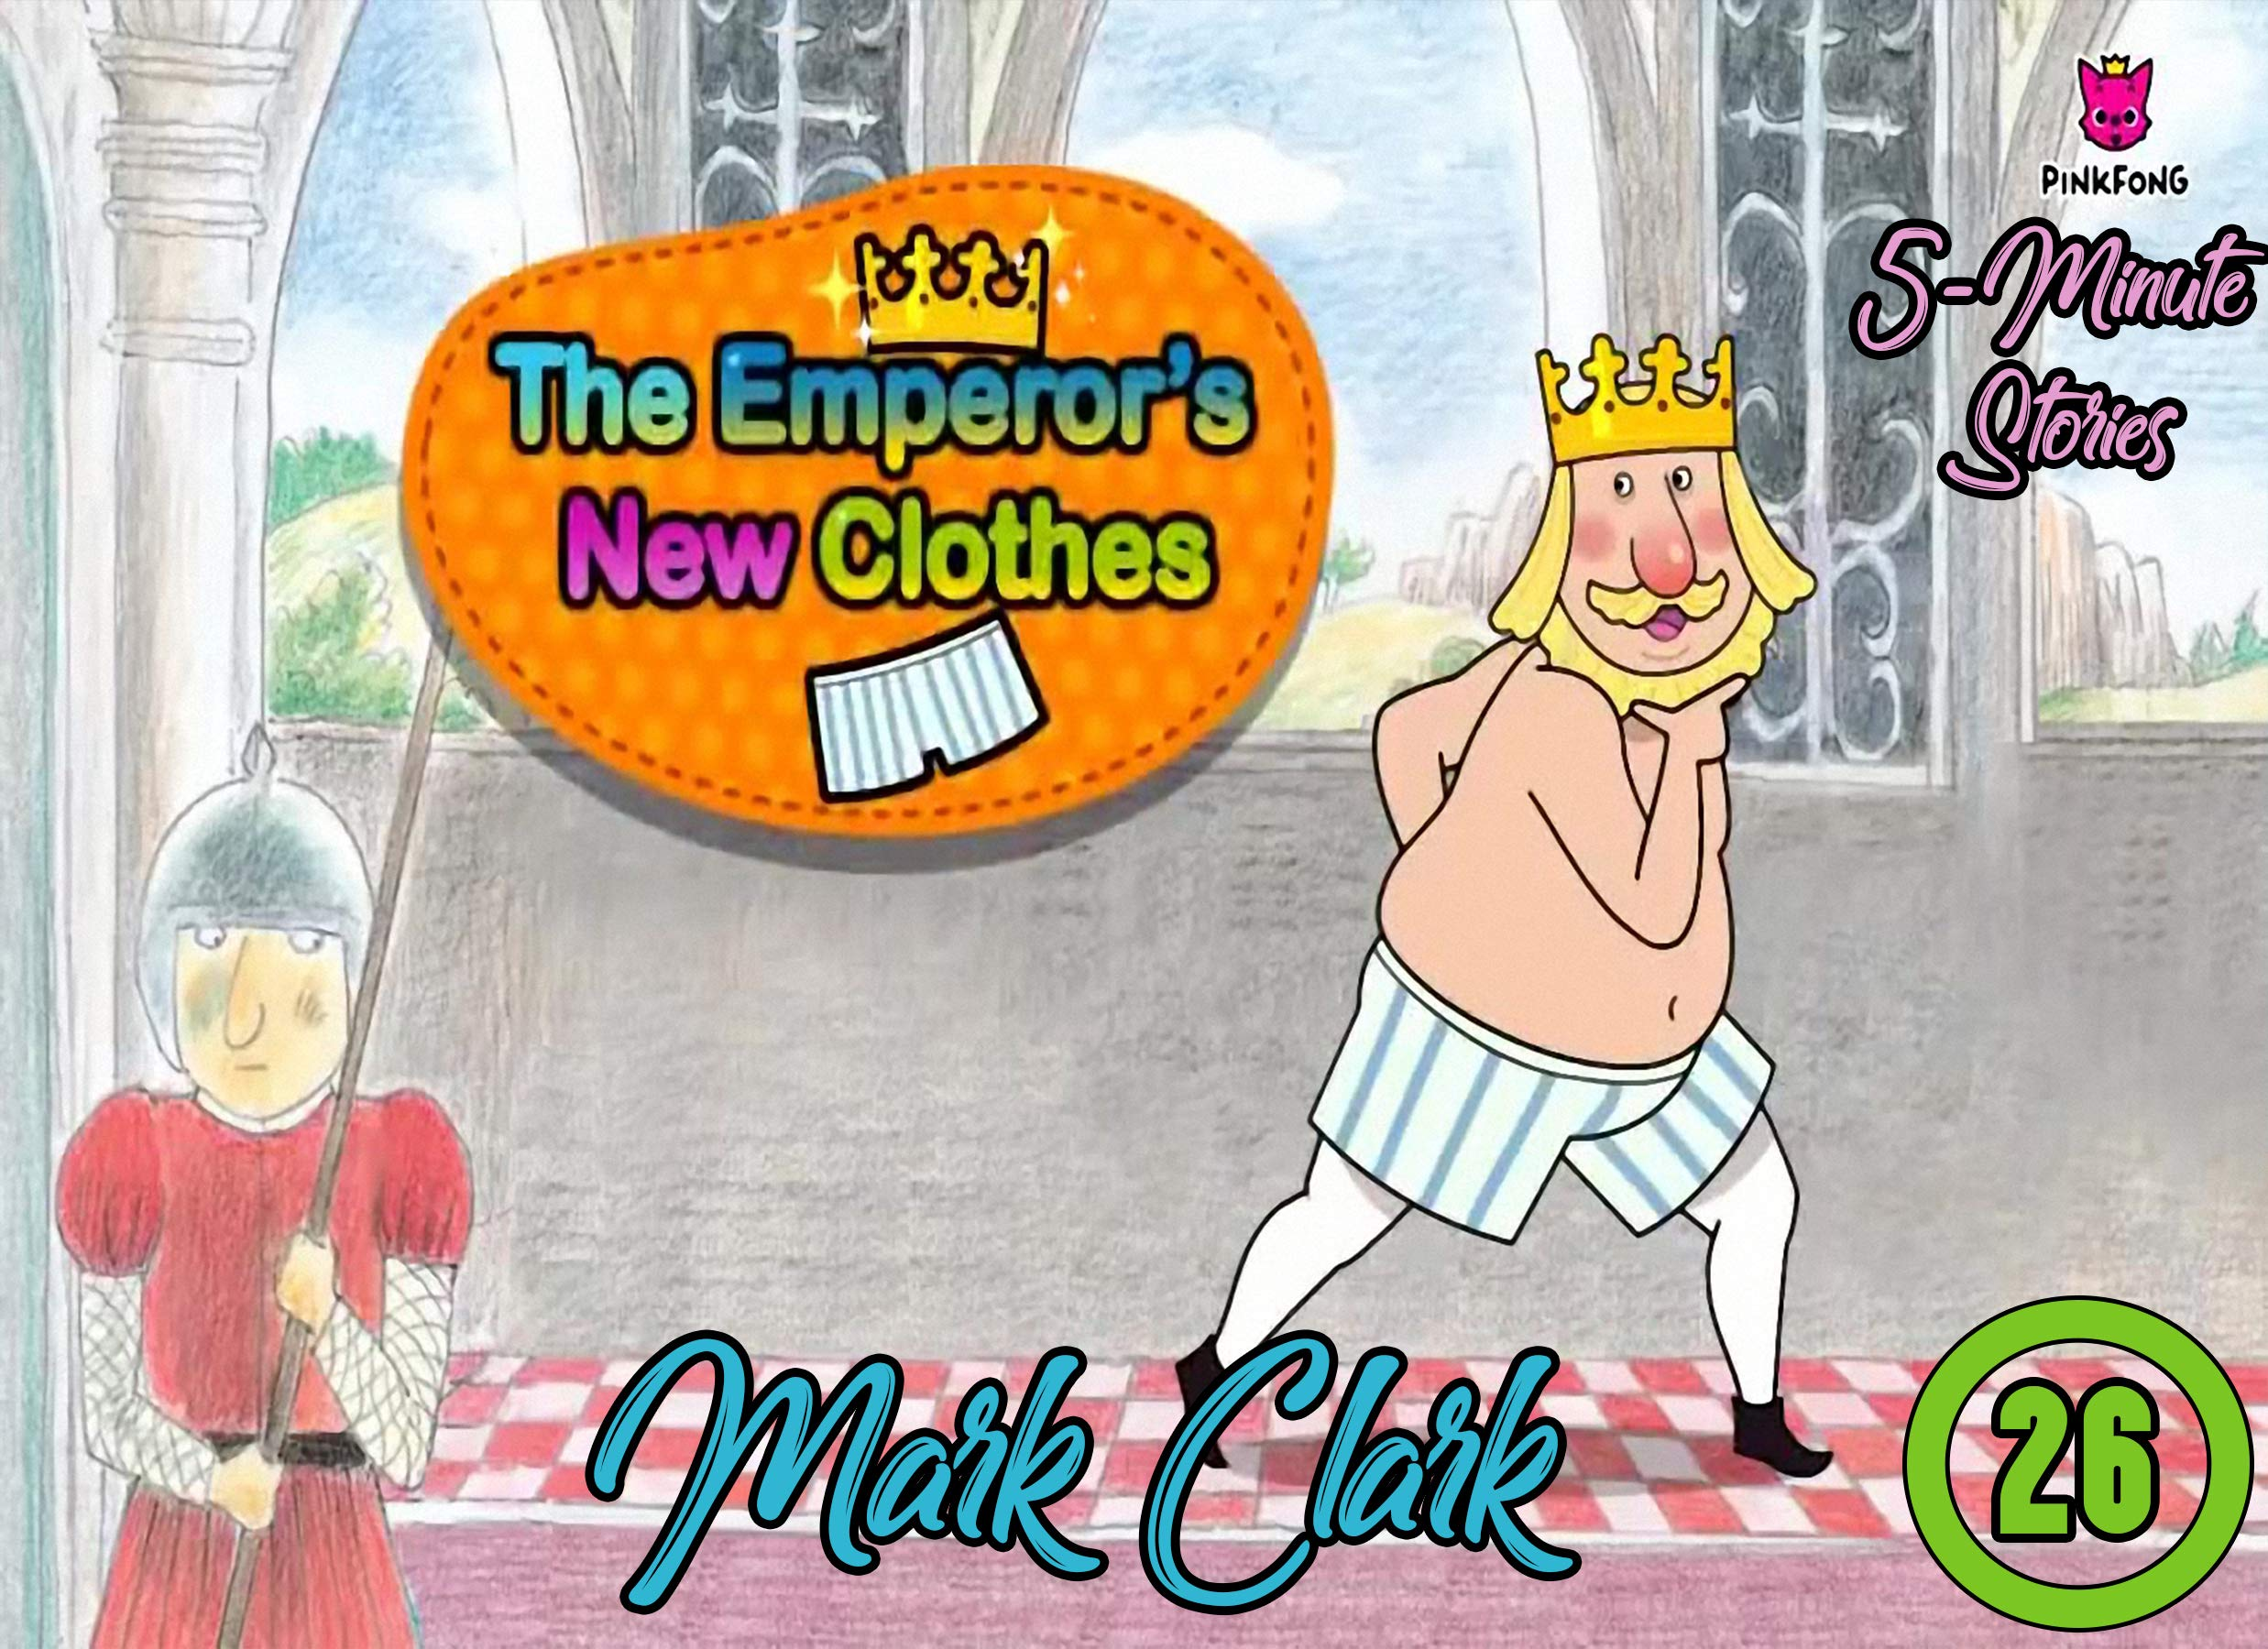 5 Minute Stories: Vol 26 - The Emperor's New Clothes - Great 5-Minute Fairy Tale And Bedtime Story Picture Book For Kids, Boys, Girls, Children Of All Age